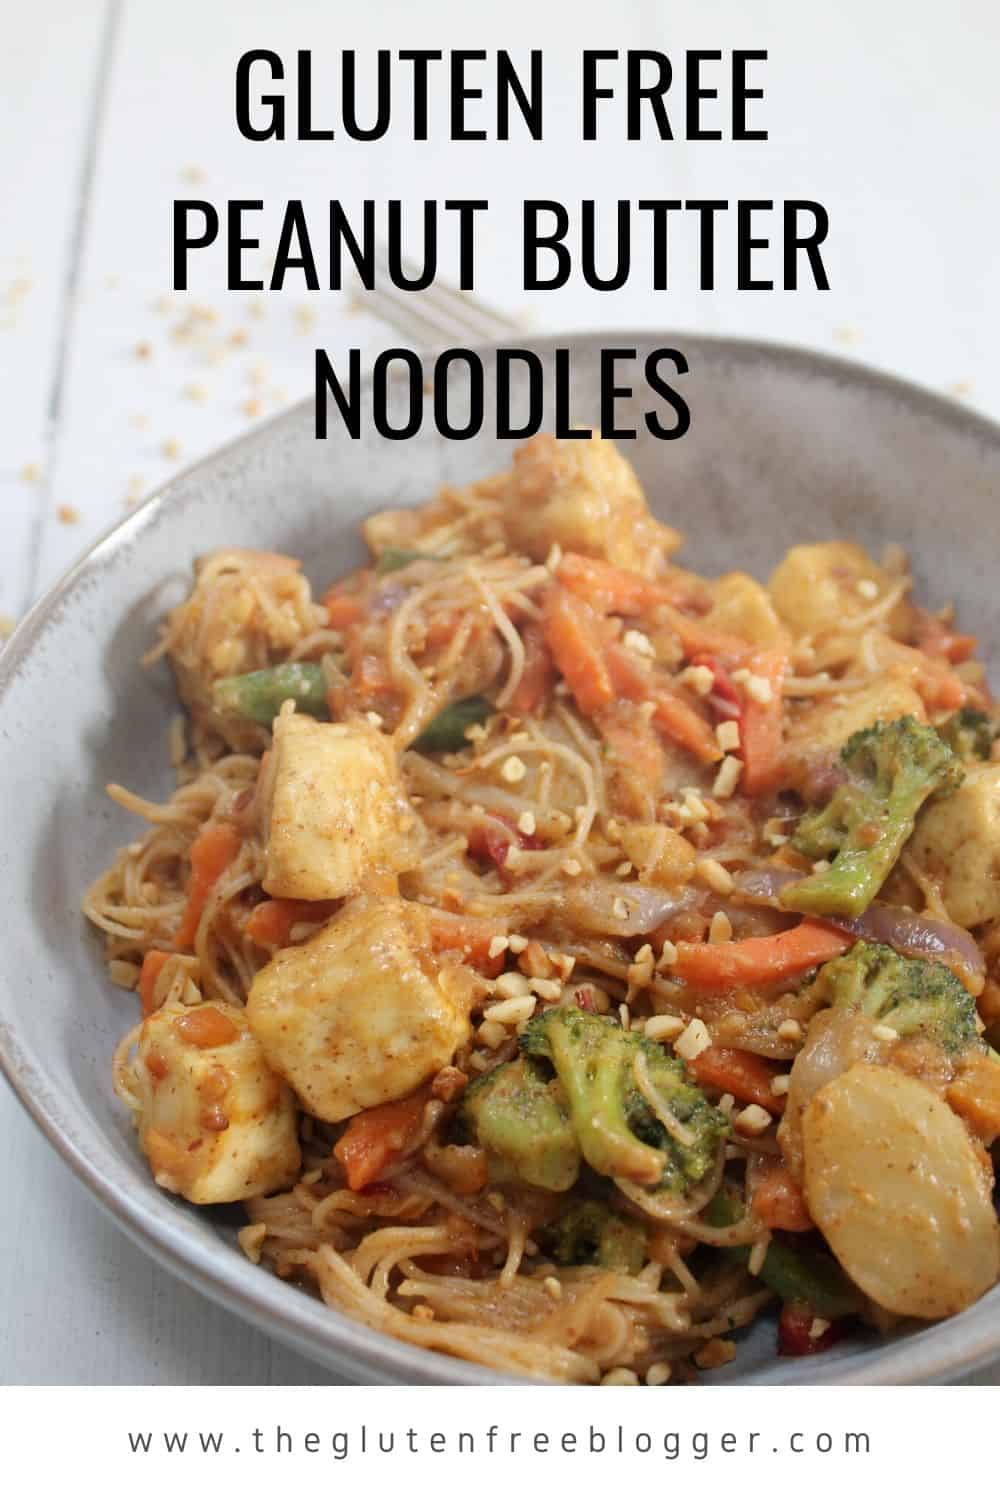 gluten free peanut butter noodles dinner ideas easy gluten free meals dairy free coeliac friendly (2)